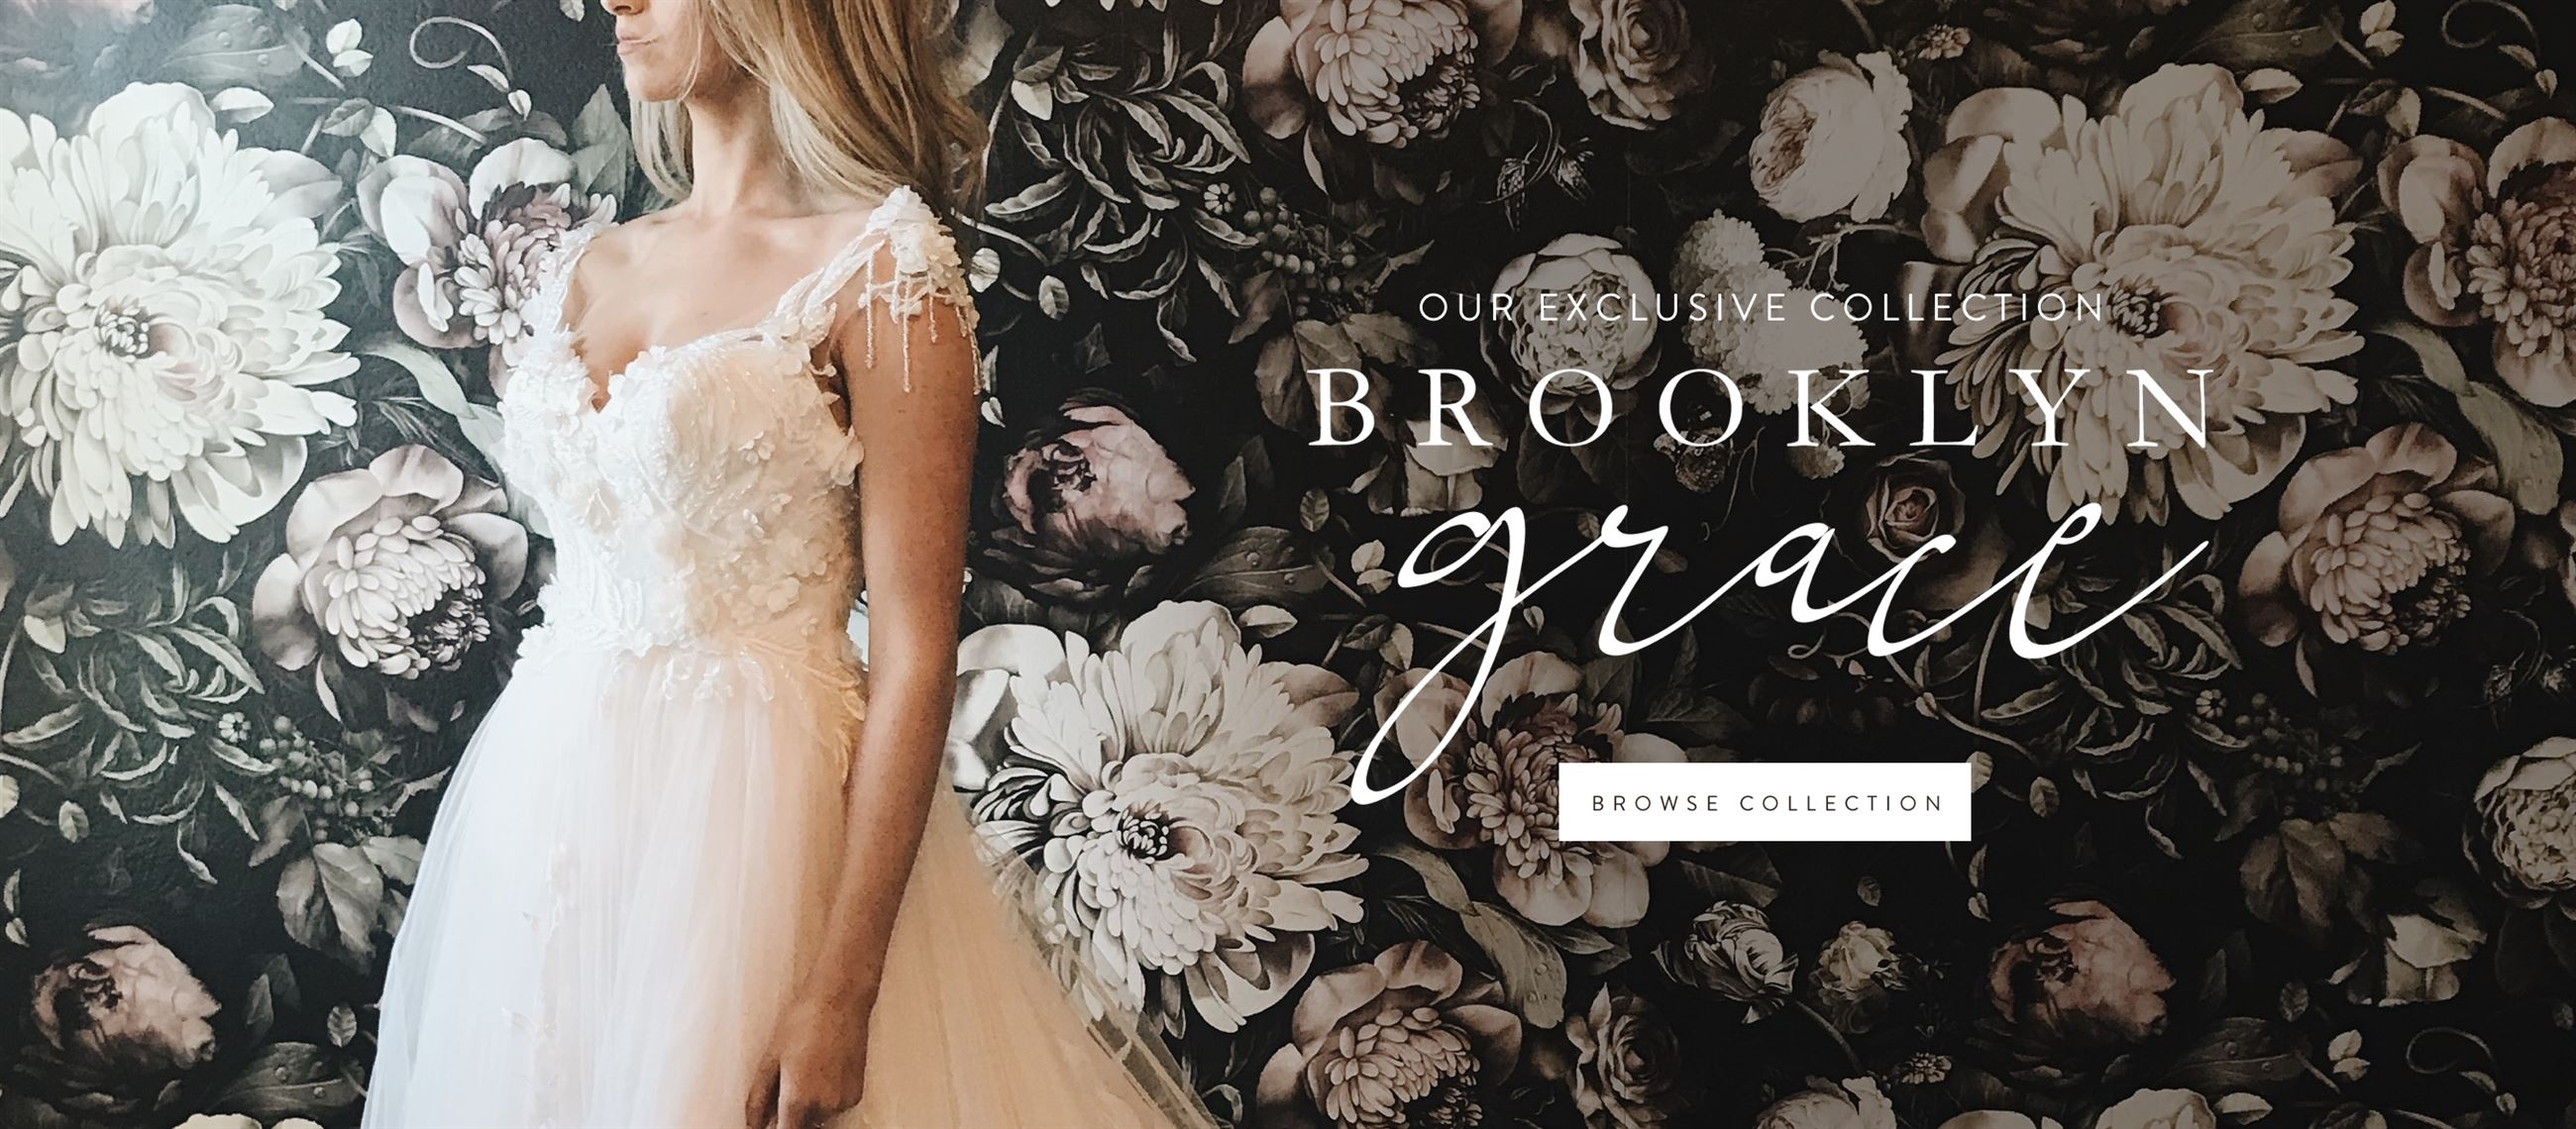 brooklyn grace wedding dresses at something new boutique in colorado springs